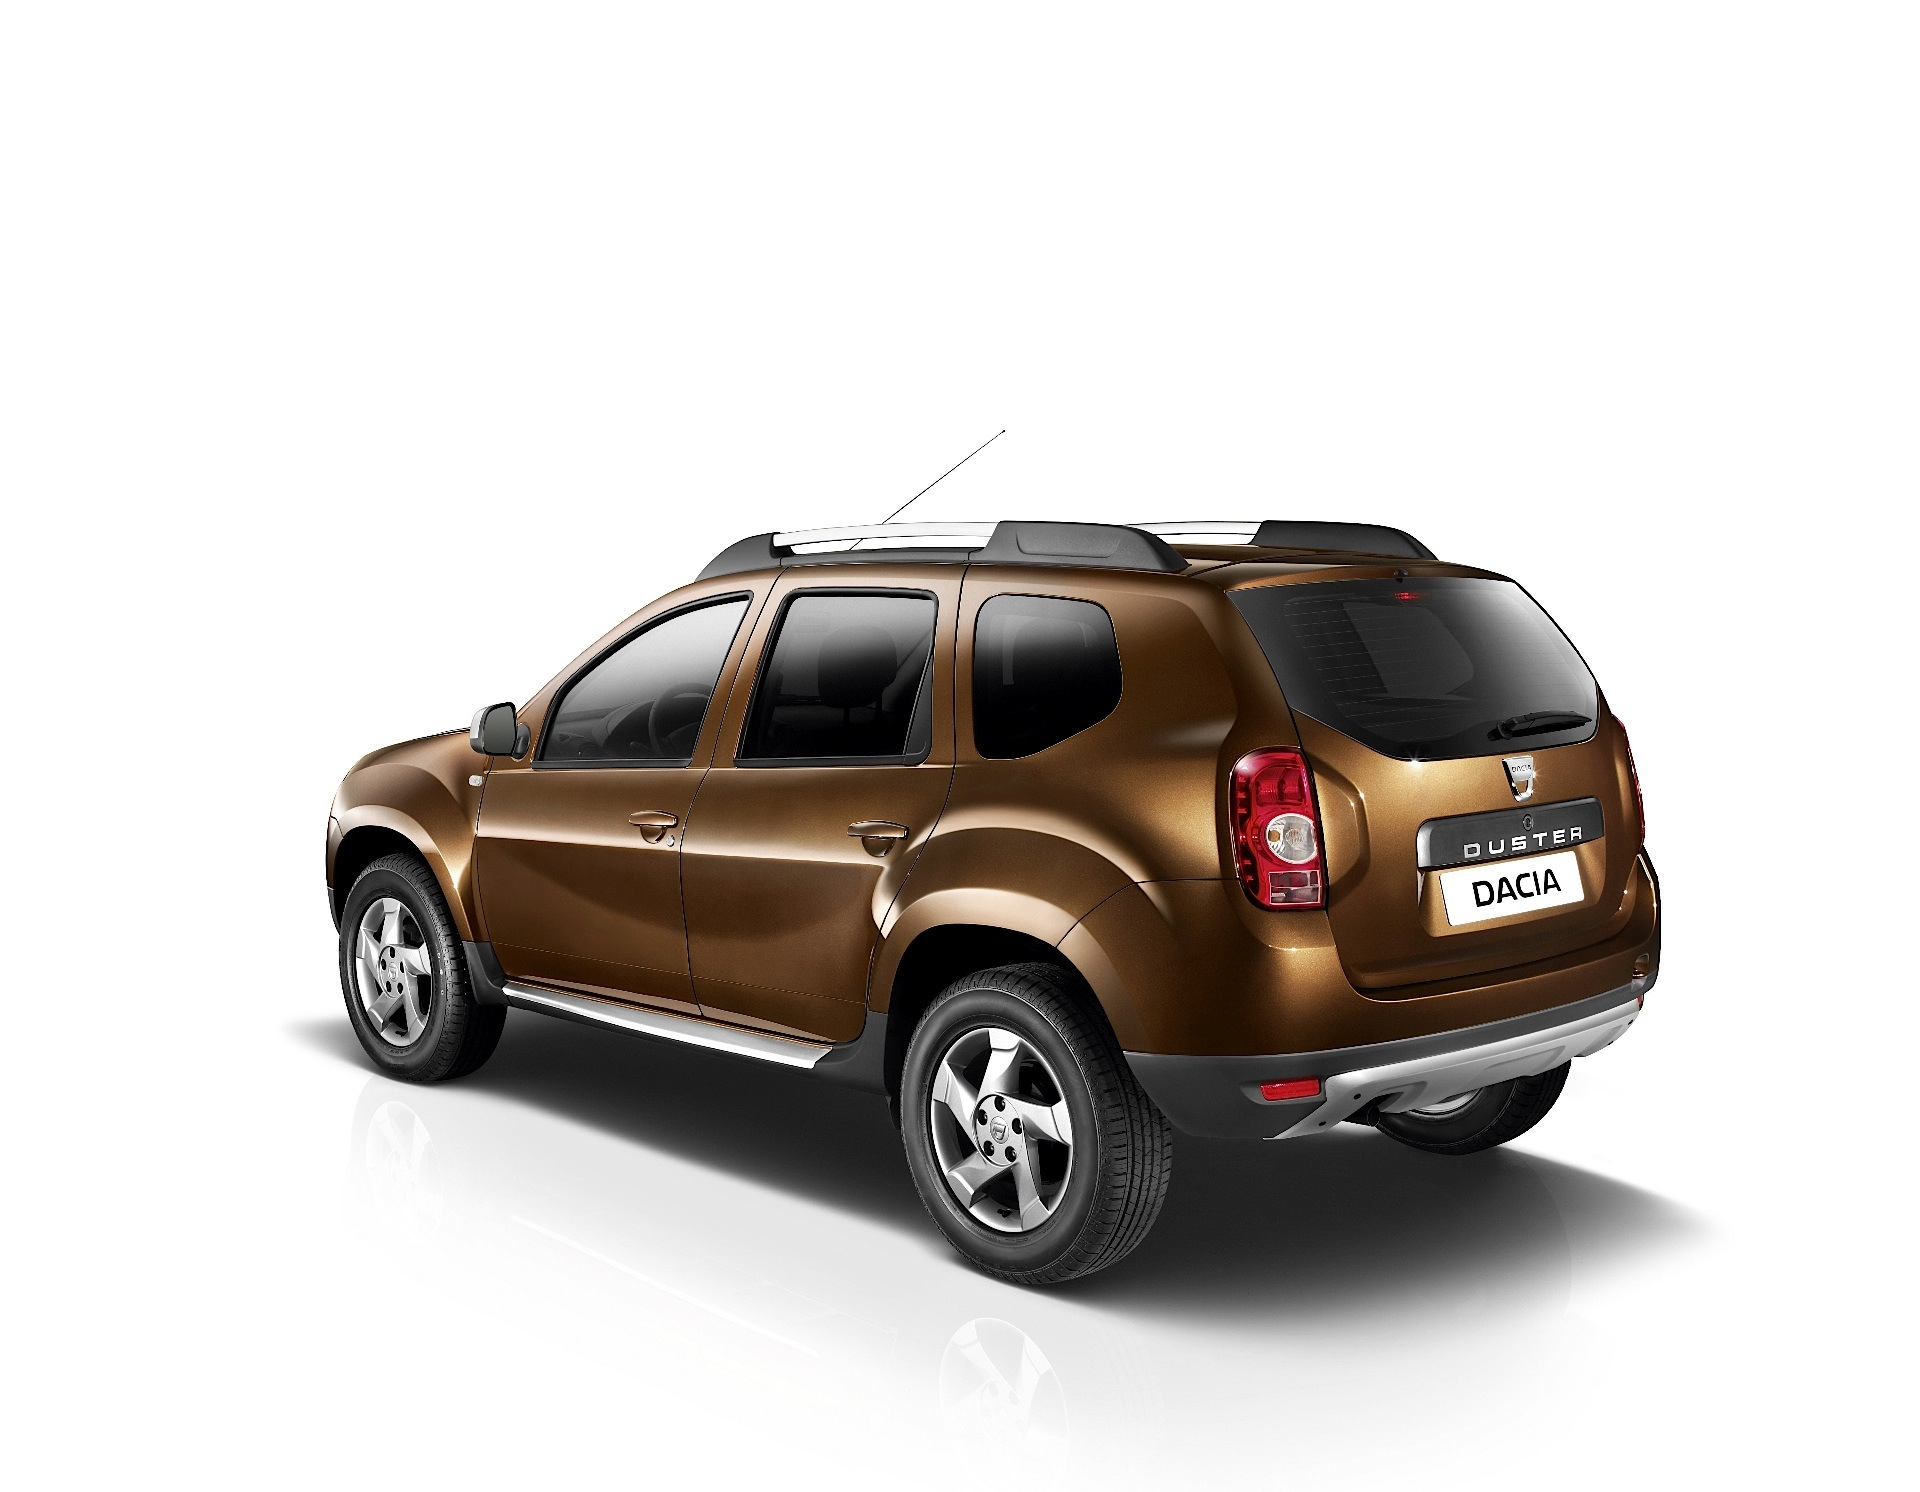 dacia duster 2010 2011 2012 2013 autoevolution. Black Bedroom Furniture Sets. Home Design Ideas